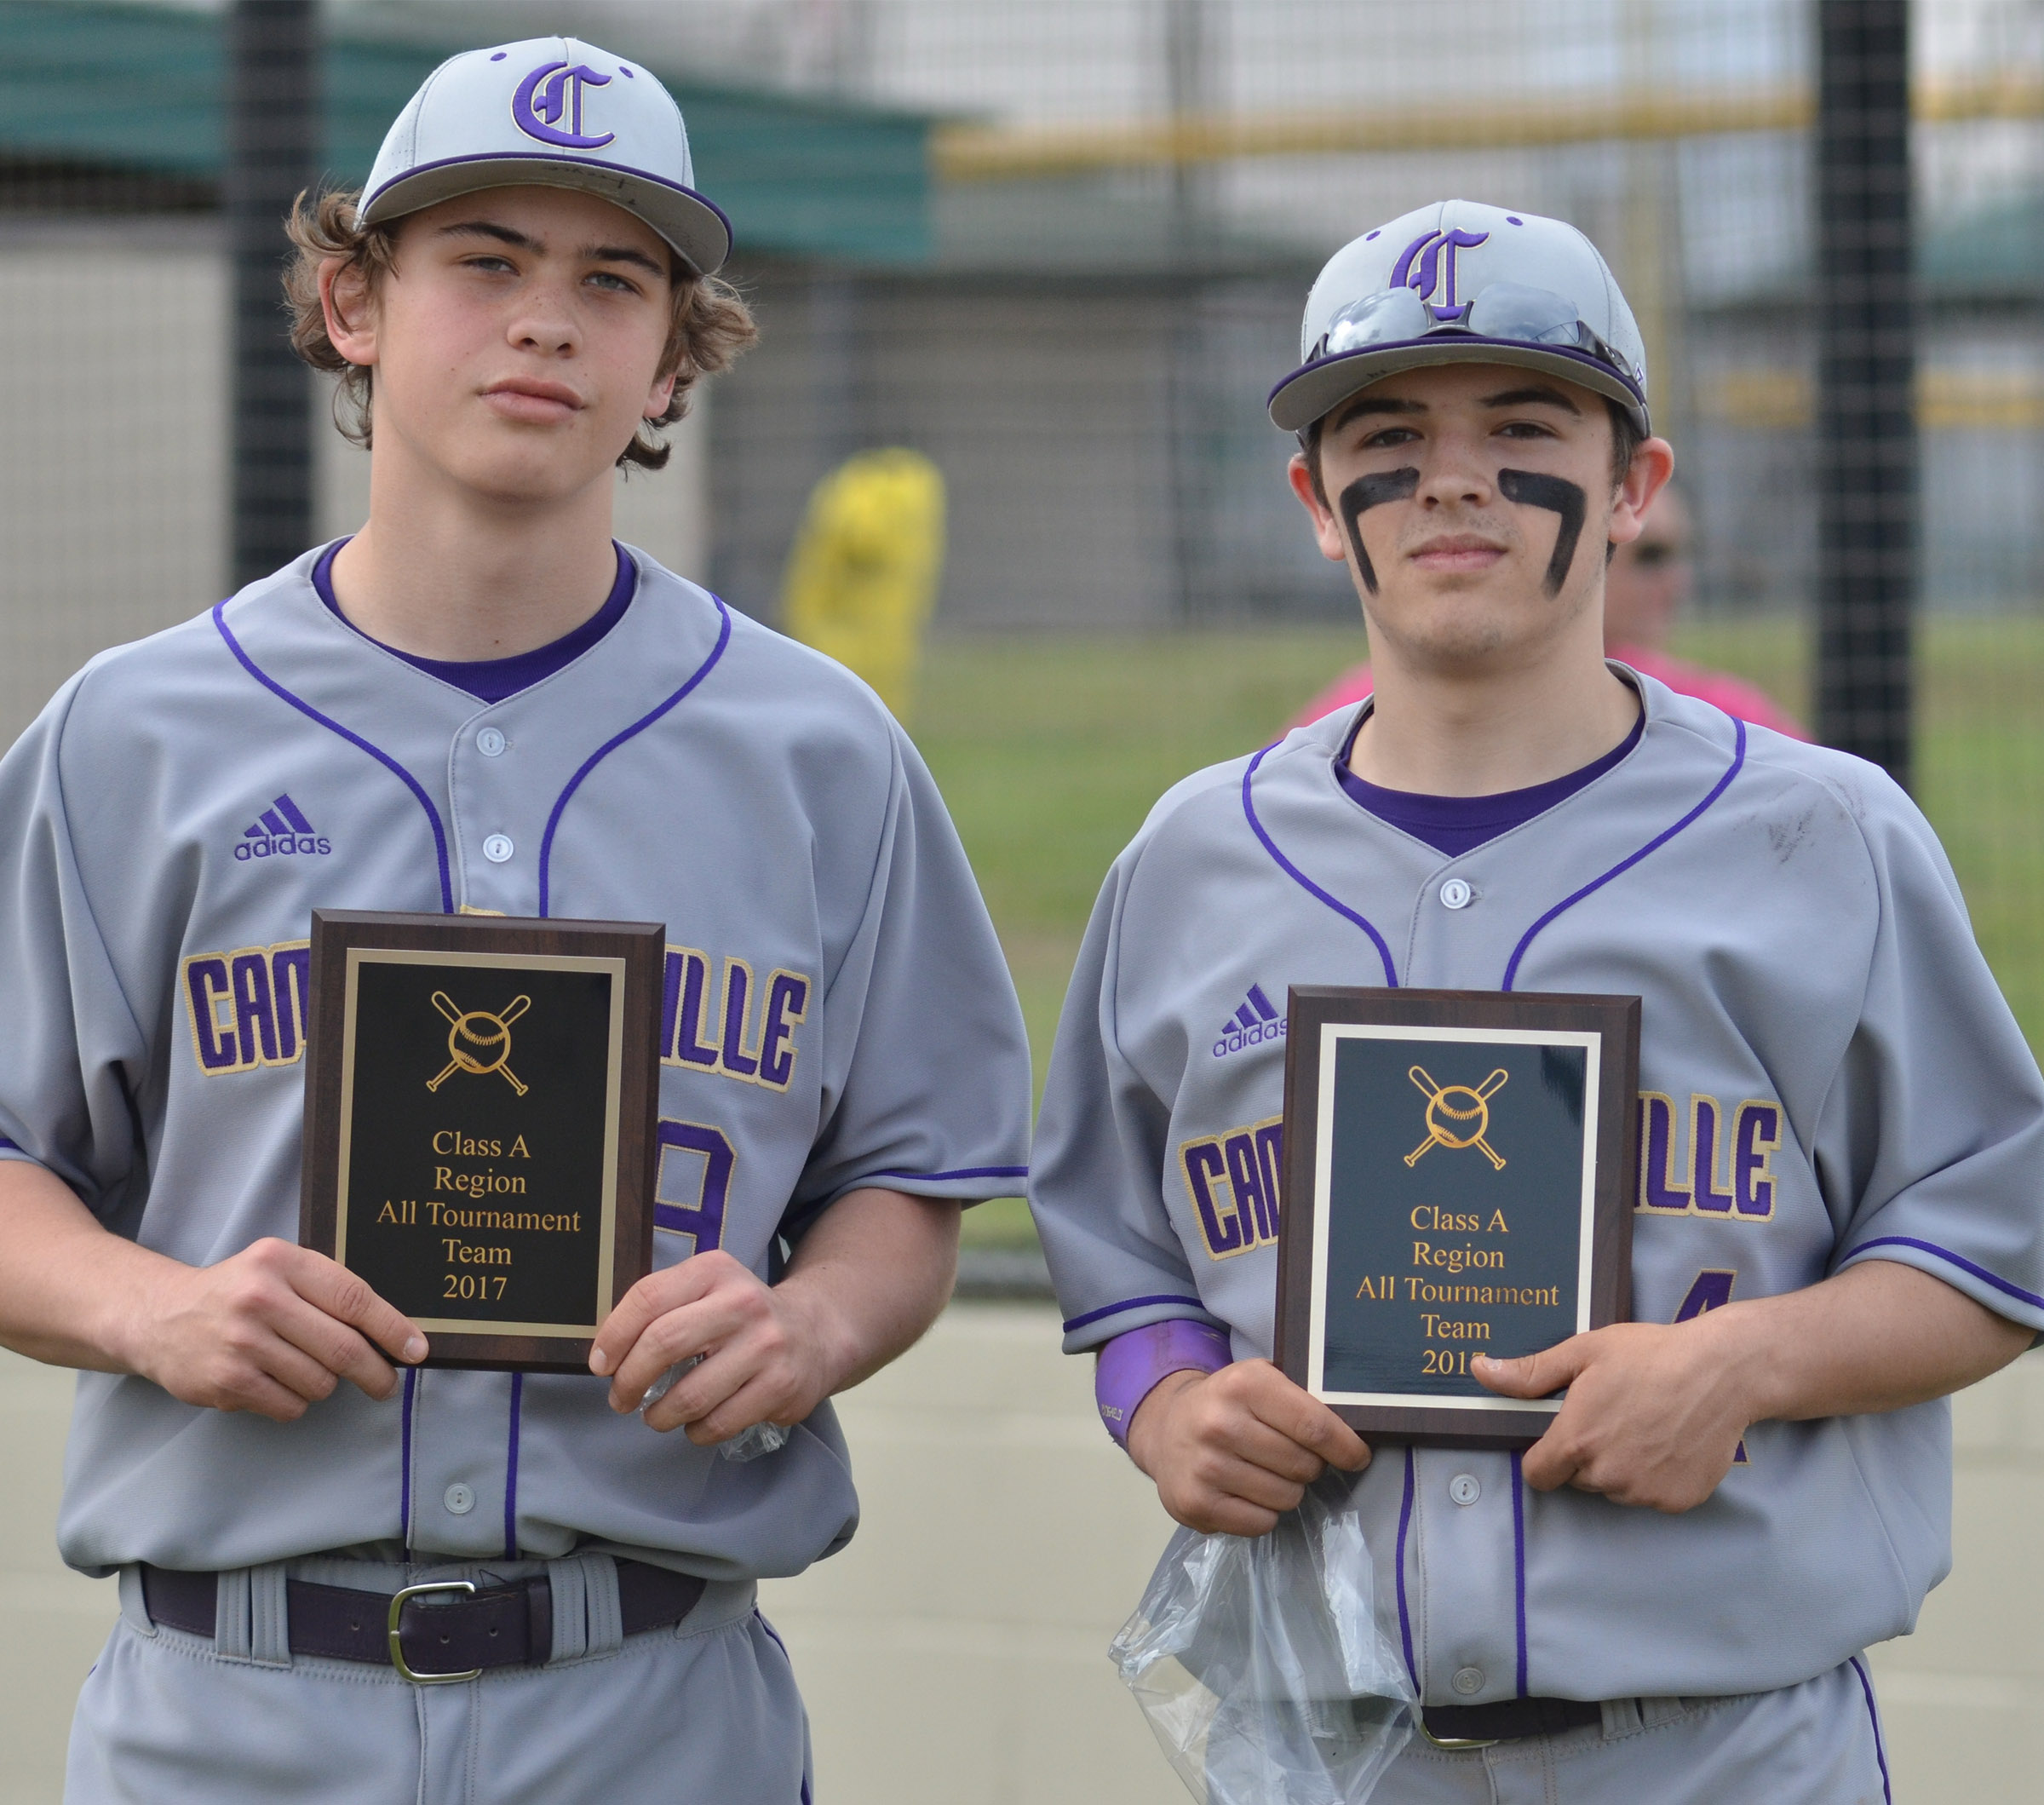 CHS sophomores Treyce Mattingly, at left, and Ryan Kearney were named to the all-tournament team.